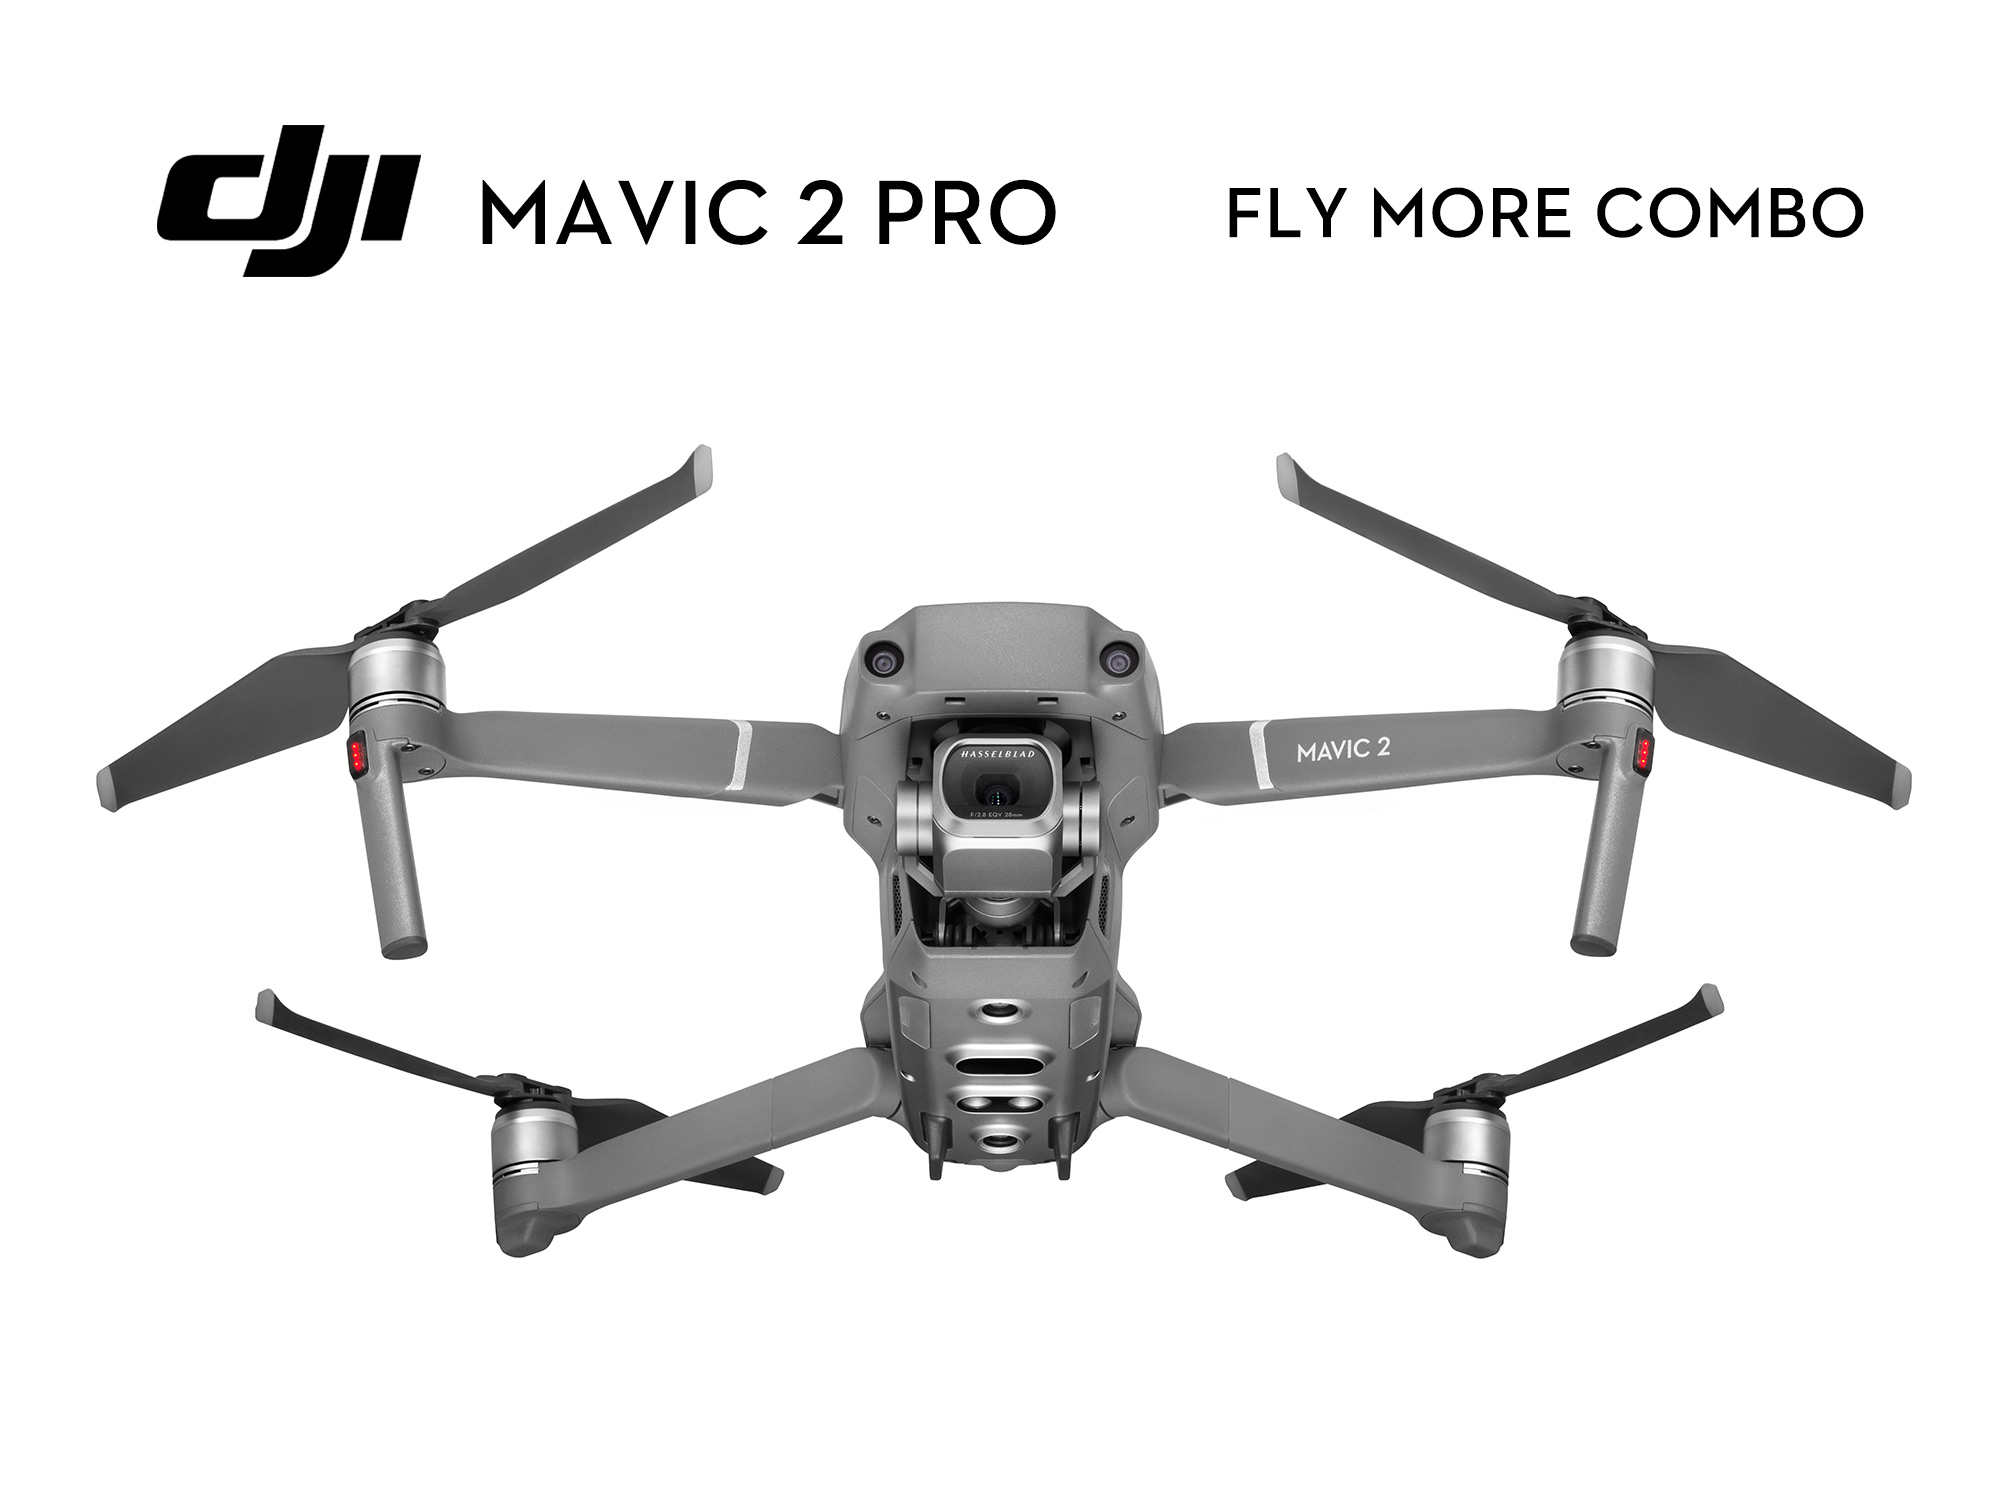 dji mavic 2 pro fly more combo djimavic2proflymore. Black Bedroom Furniture Sets. Home Design Ideas